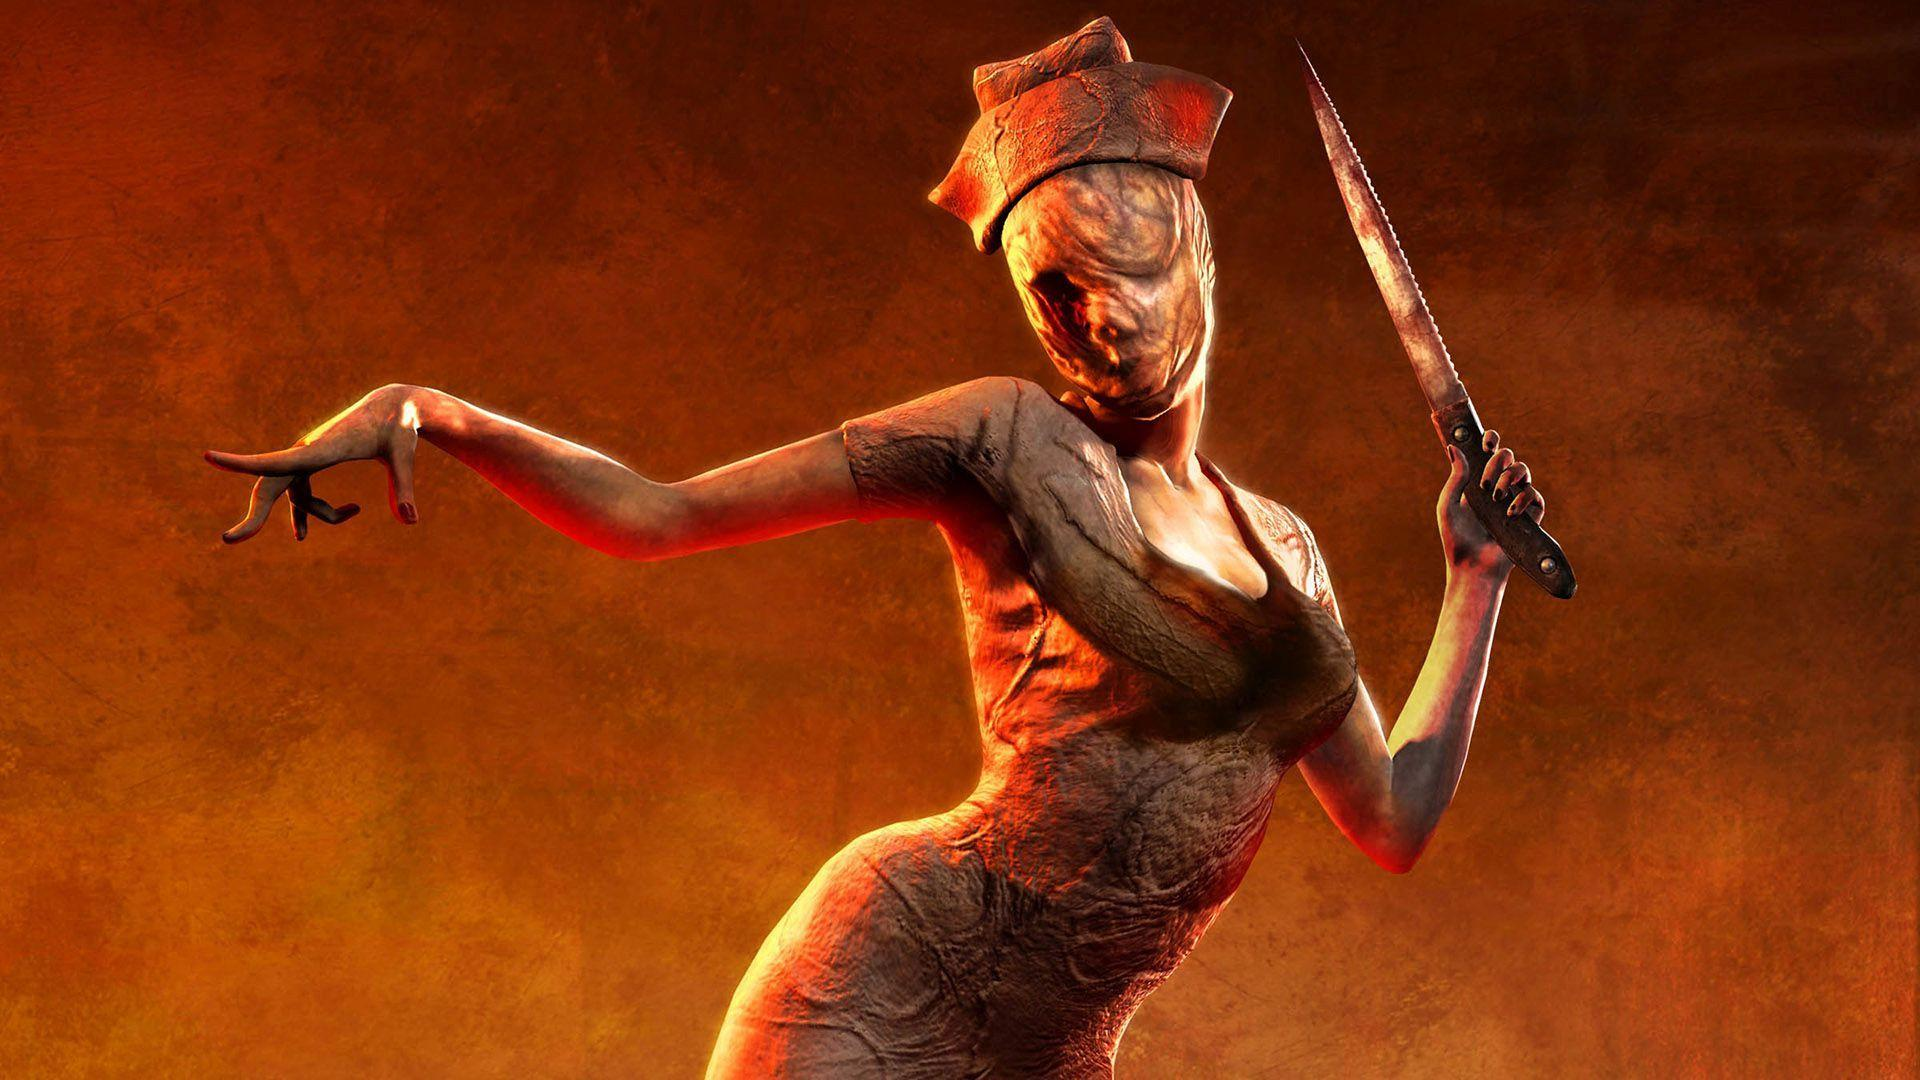 Silent Hill Hd Wallpapers Posted By Ethan Cunningham